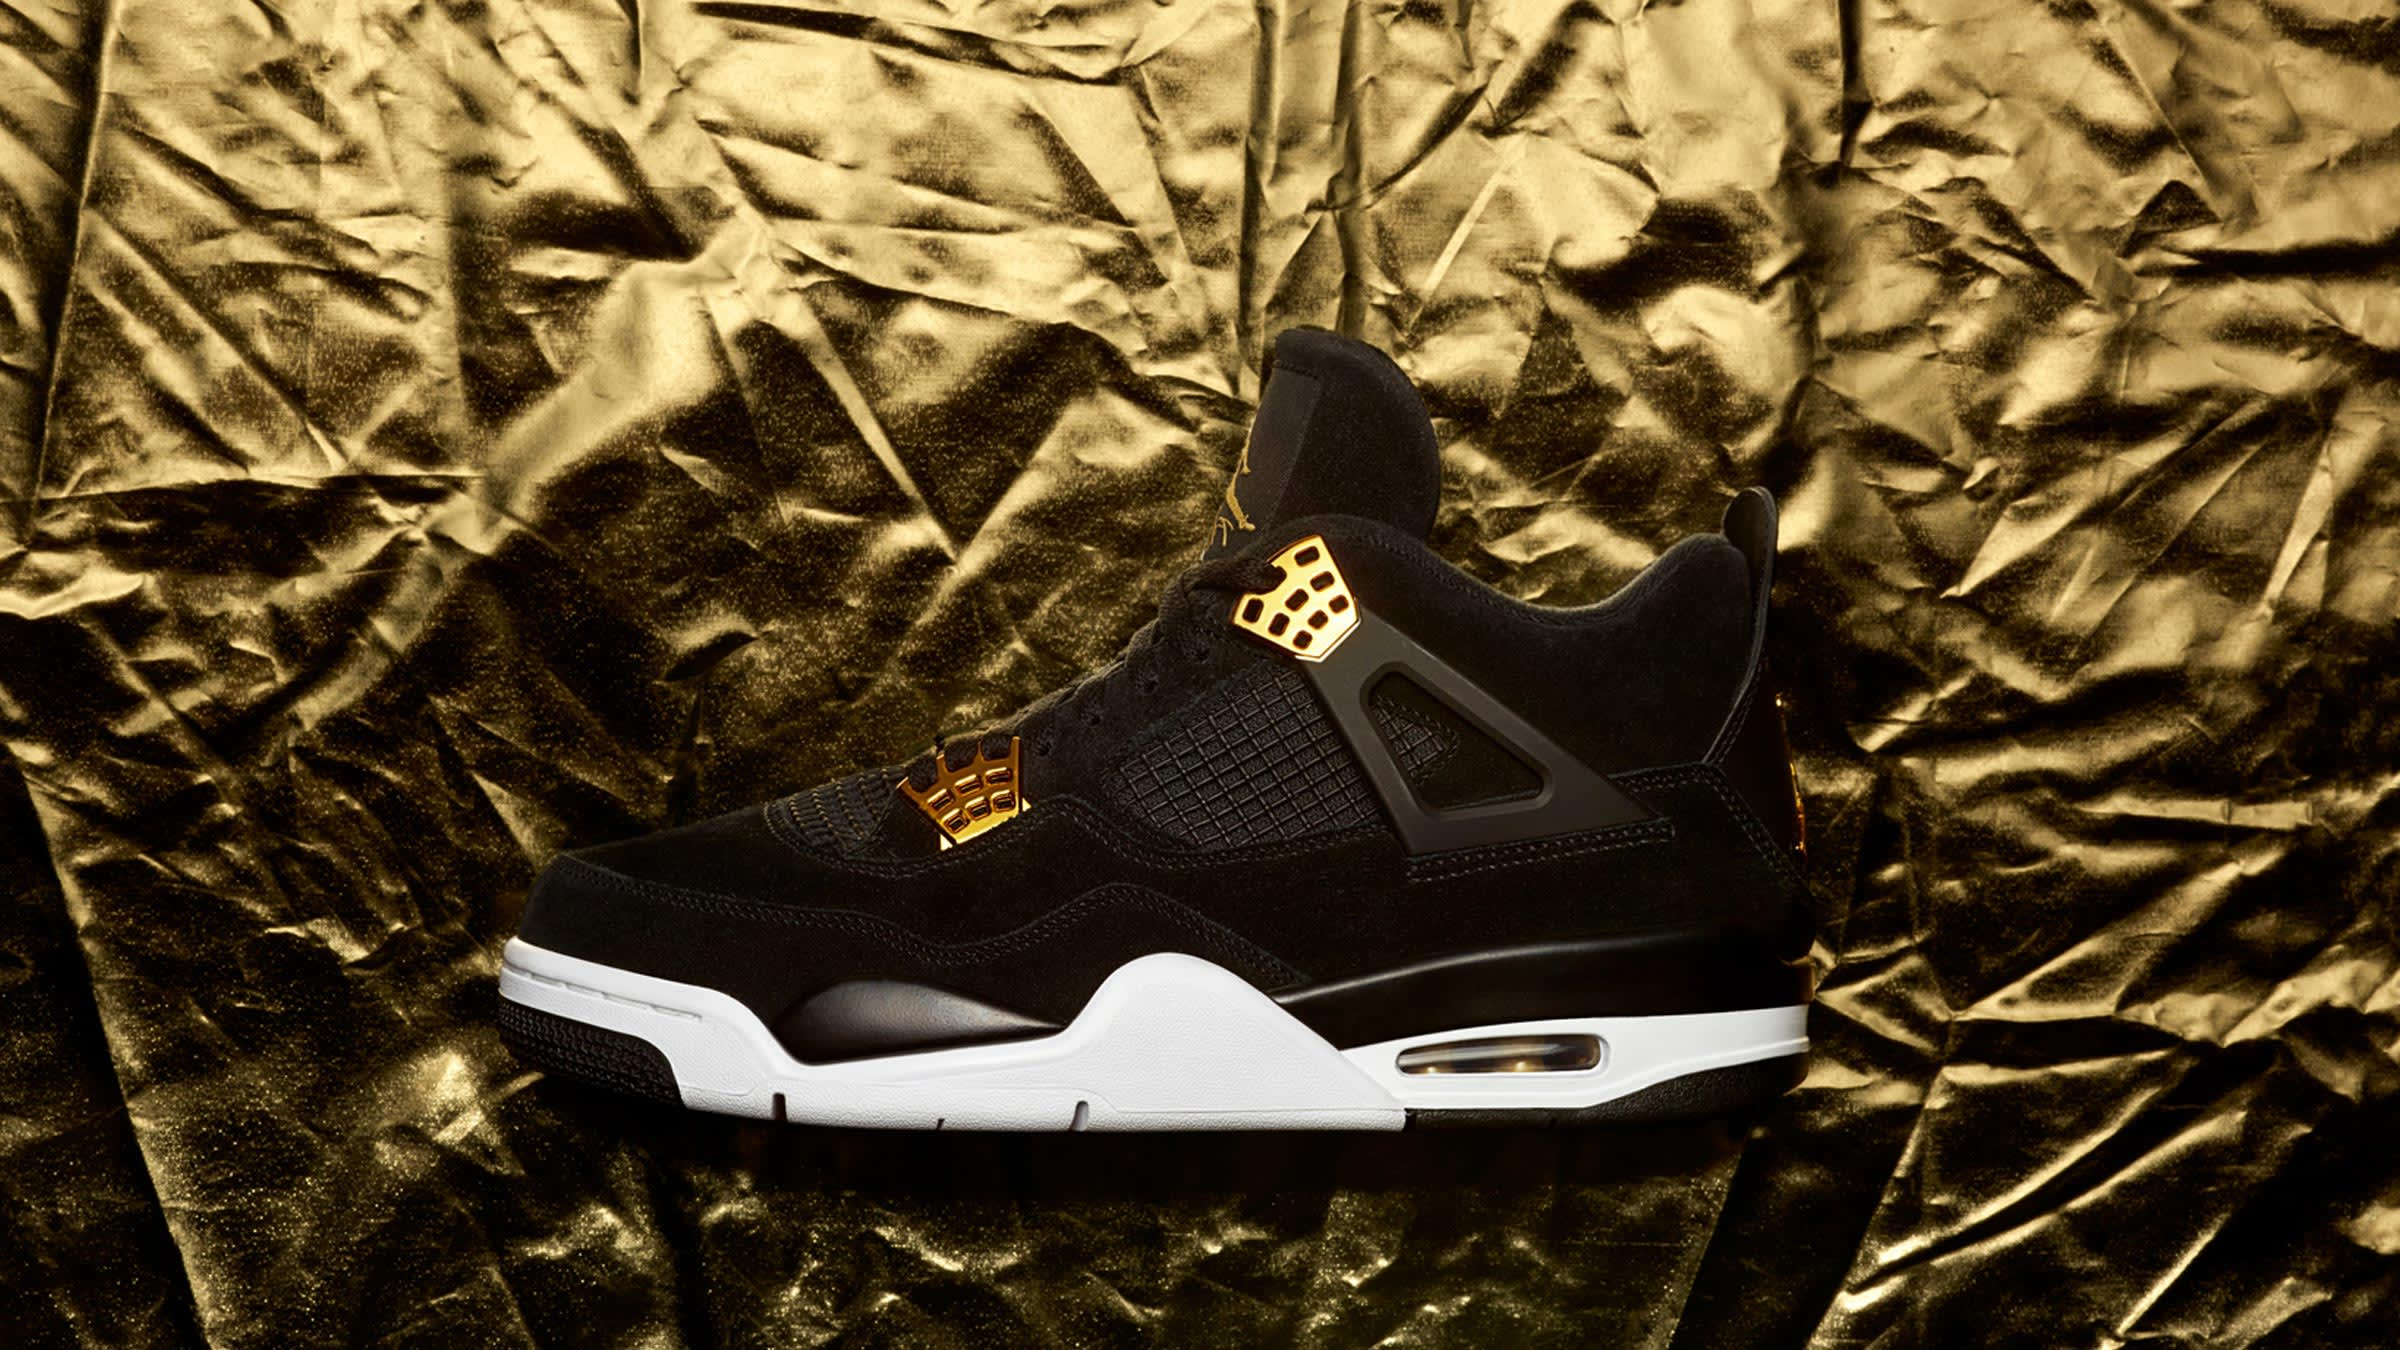 bc44b93f9546c Nike Air Jordan 4 Retro 'Royalty' Black, Metallic Gold & White | END.